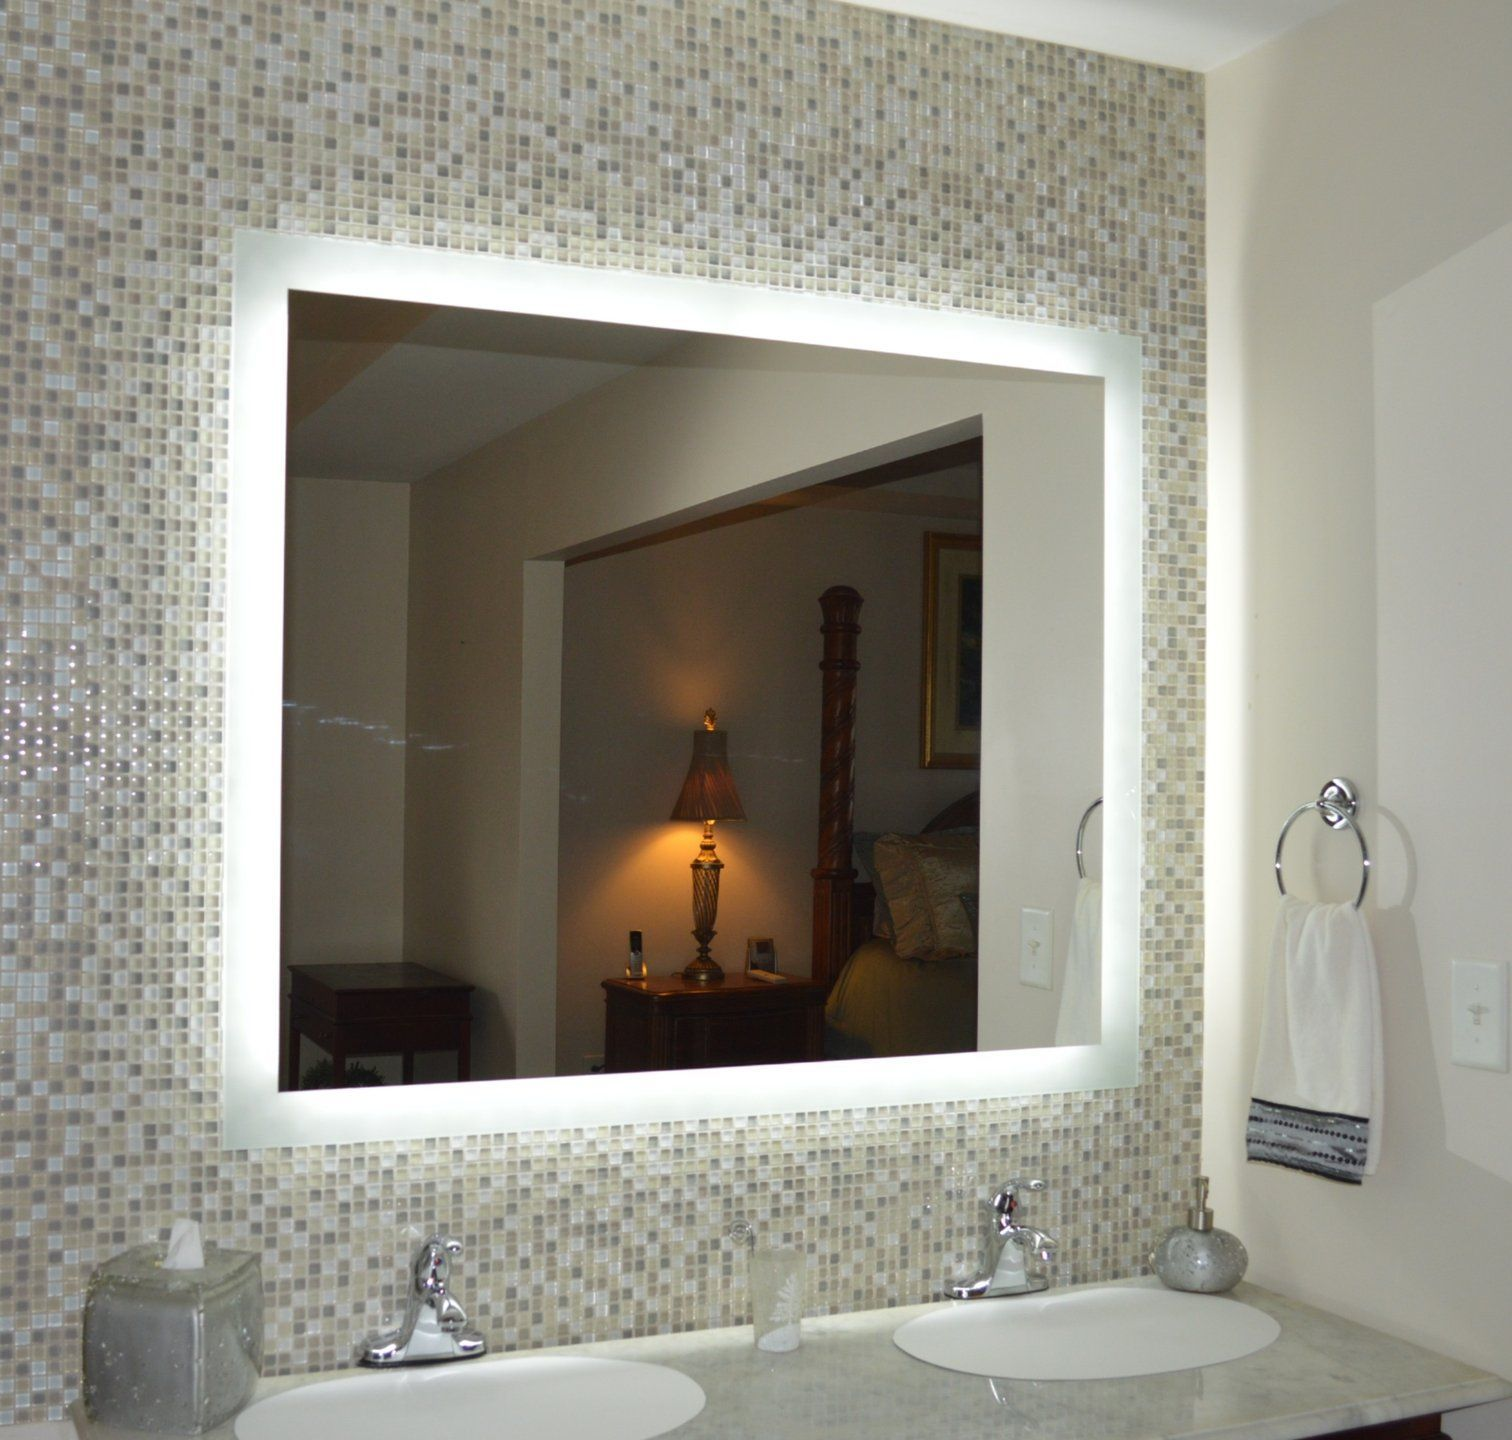 Where To Buy Bathroom Accessories Bathroom Sink Accessories Sets